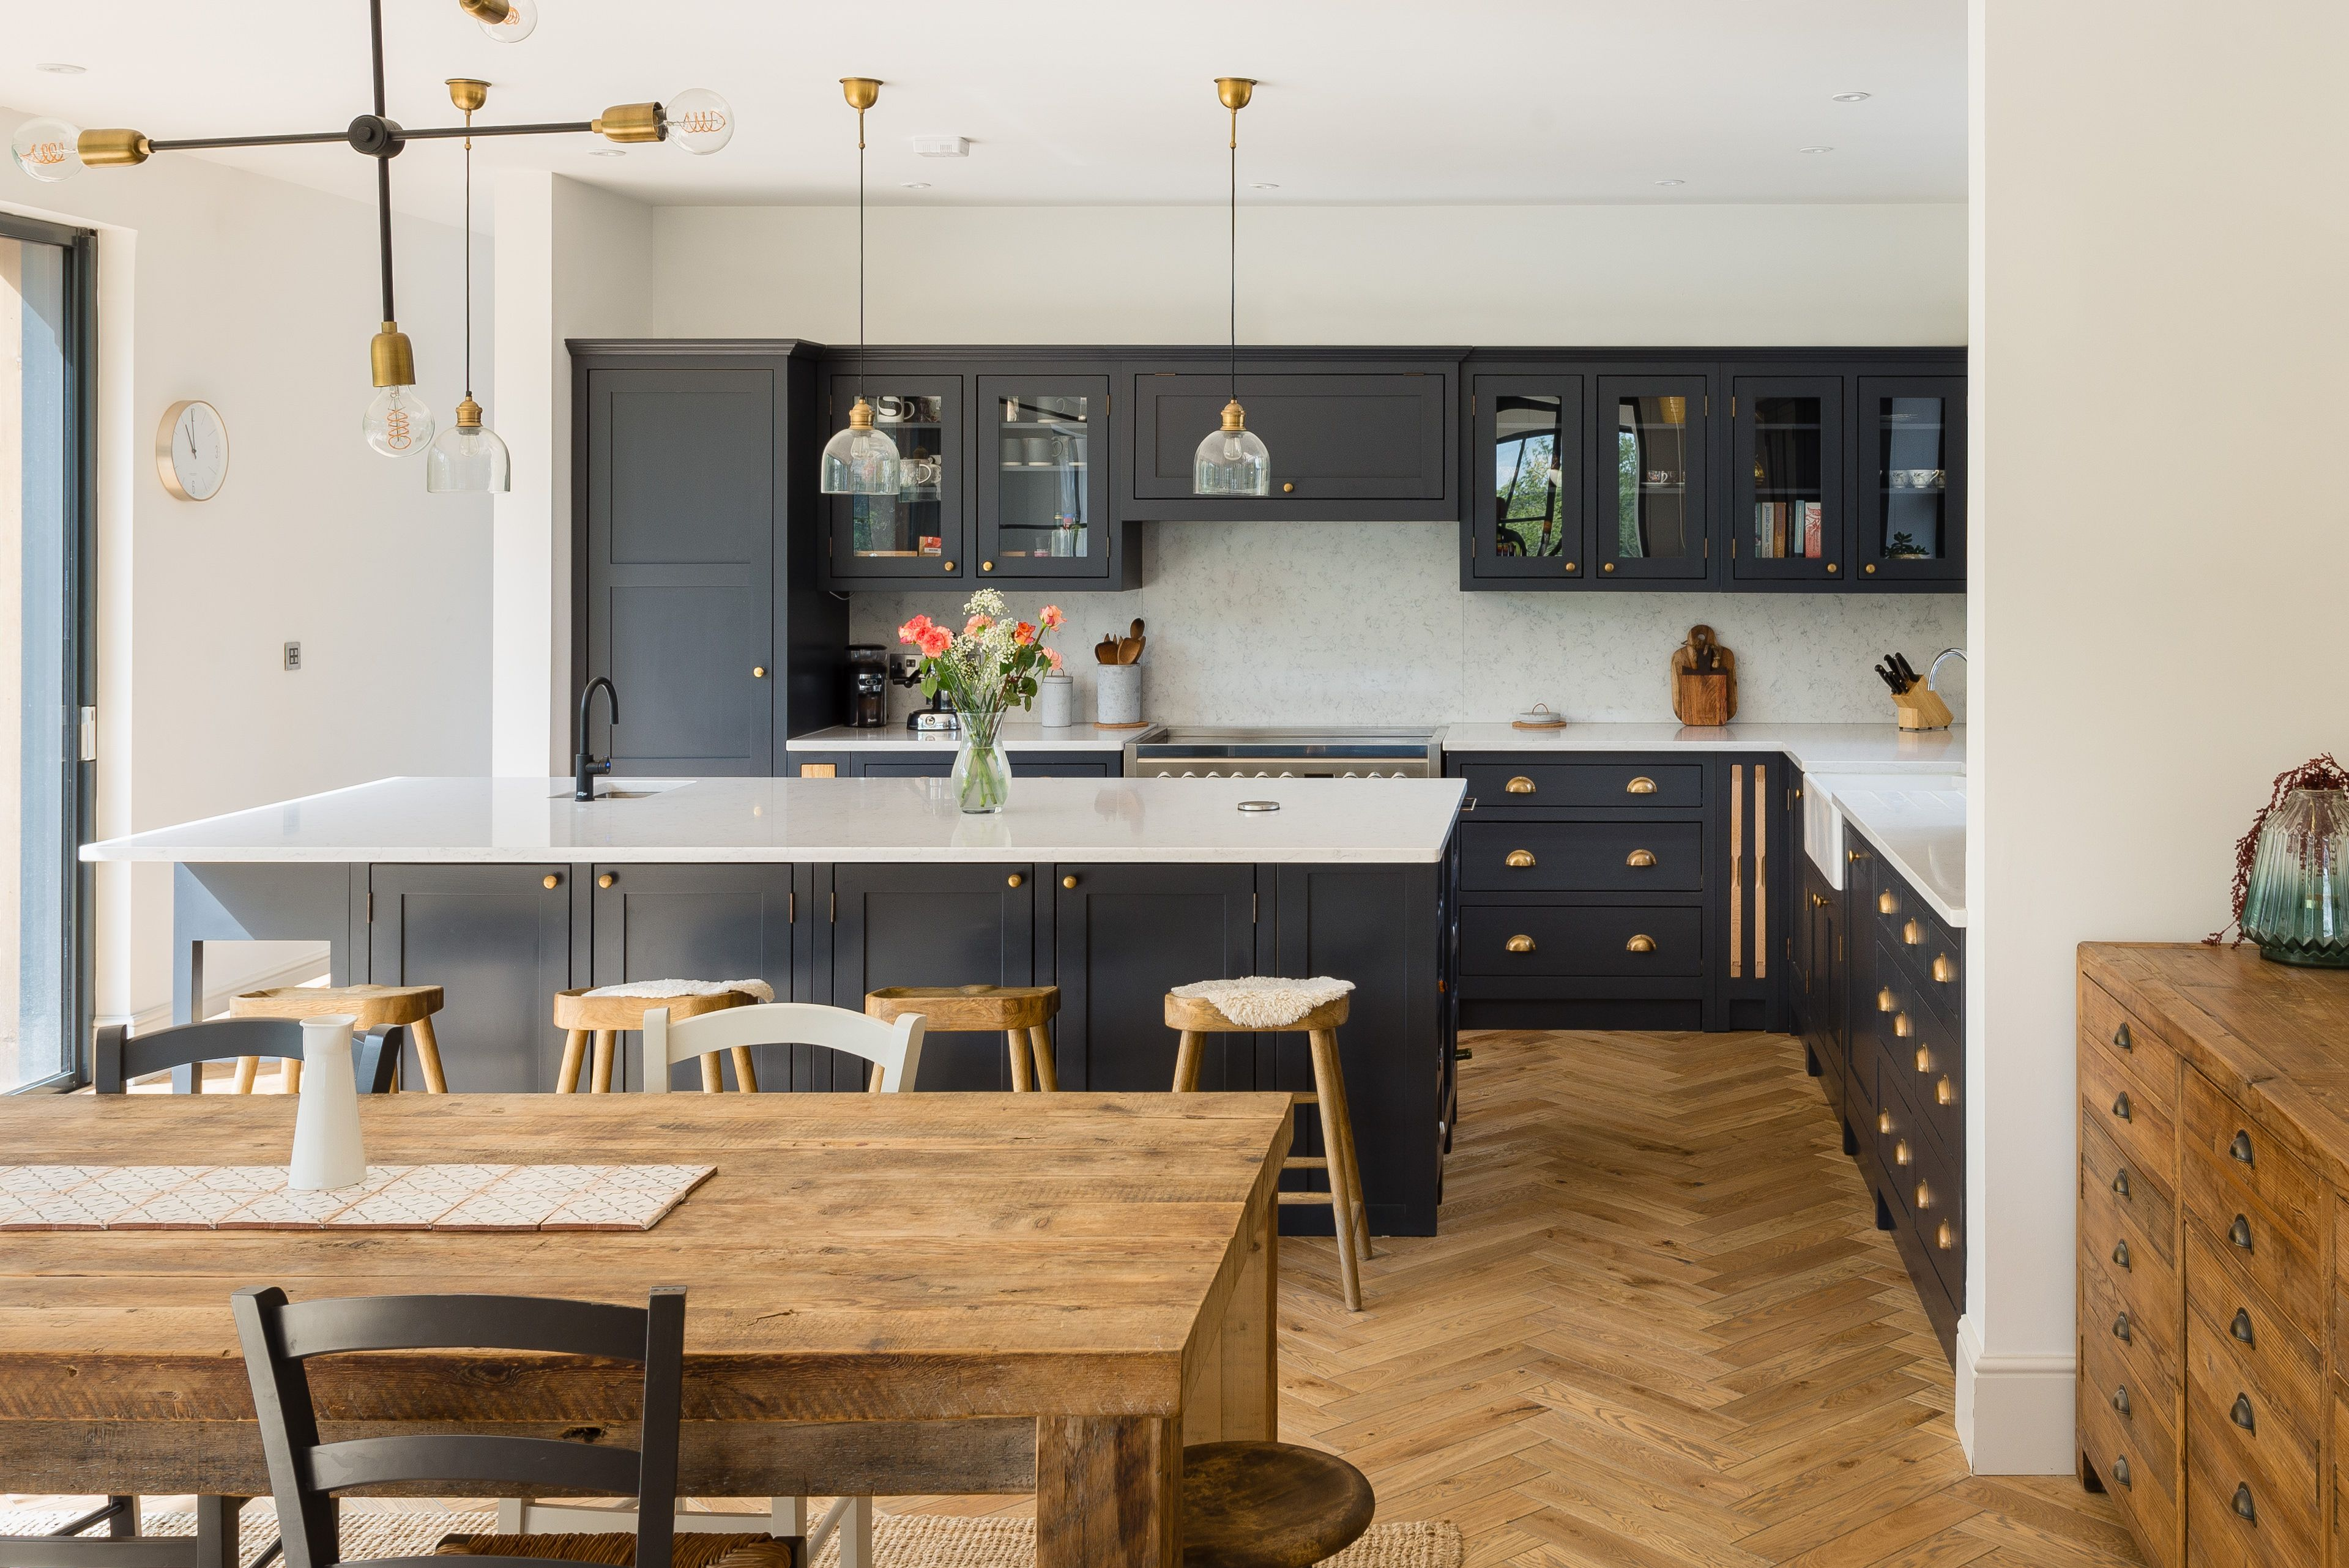 Www Theshakerkitchen Co With Images Open Plan Kitchen Living